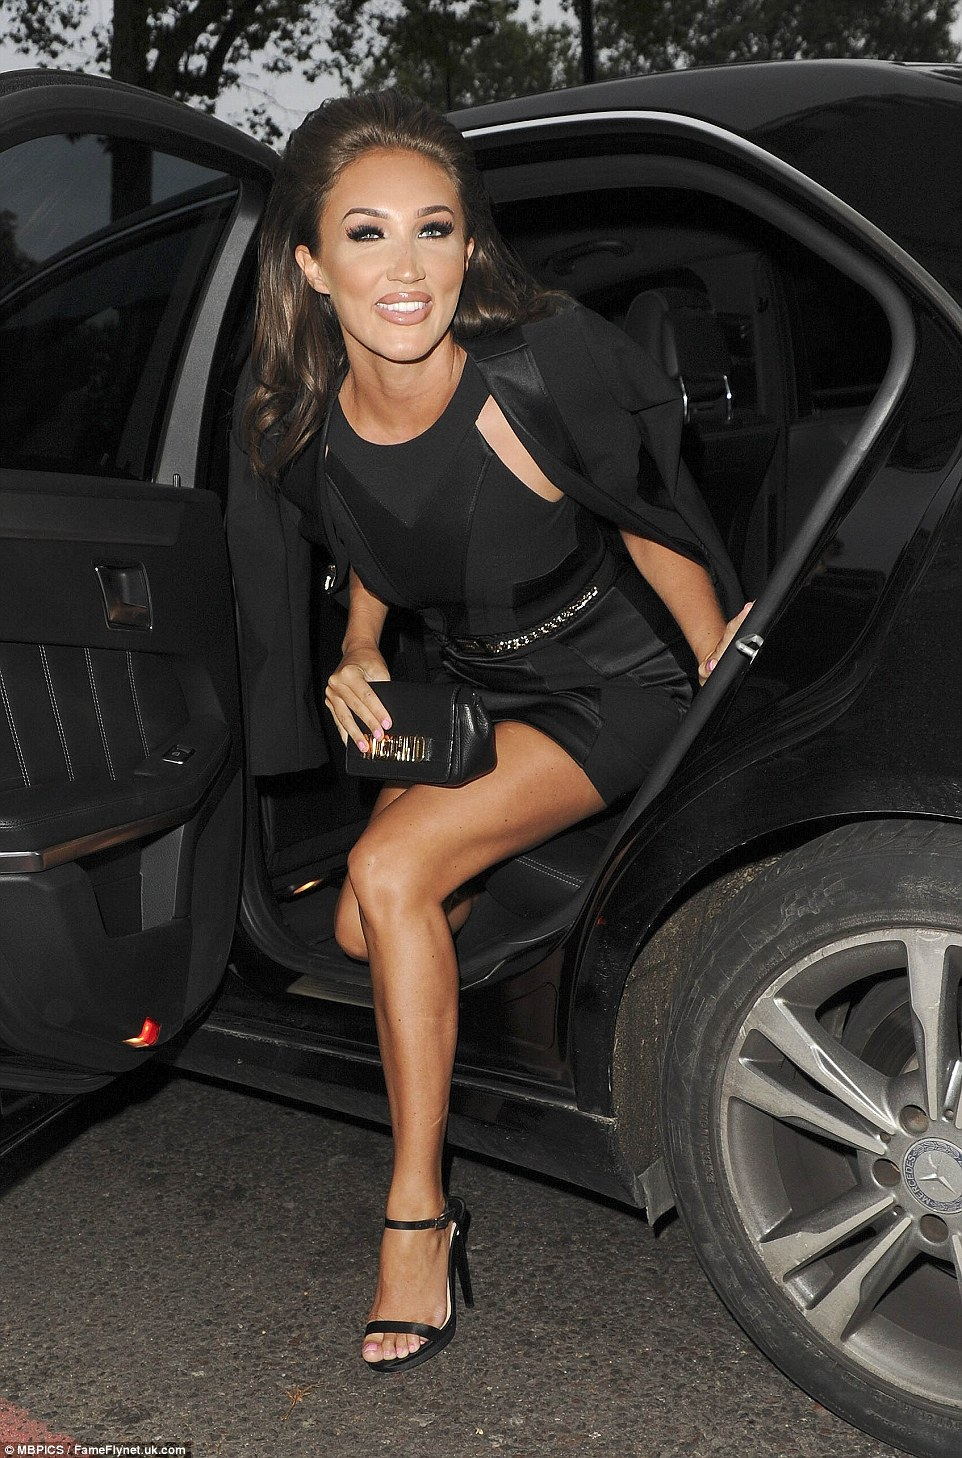 A leggy arrival: Megan McKenna had shown off her lean legs on arrival at the venue